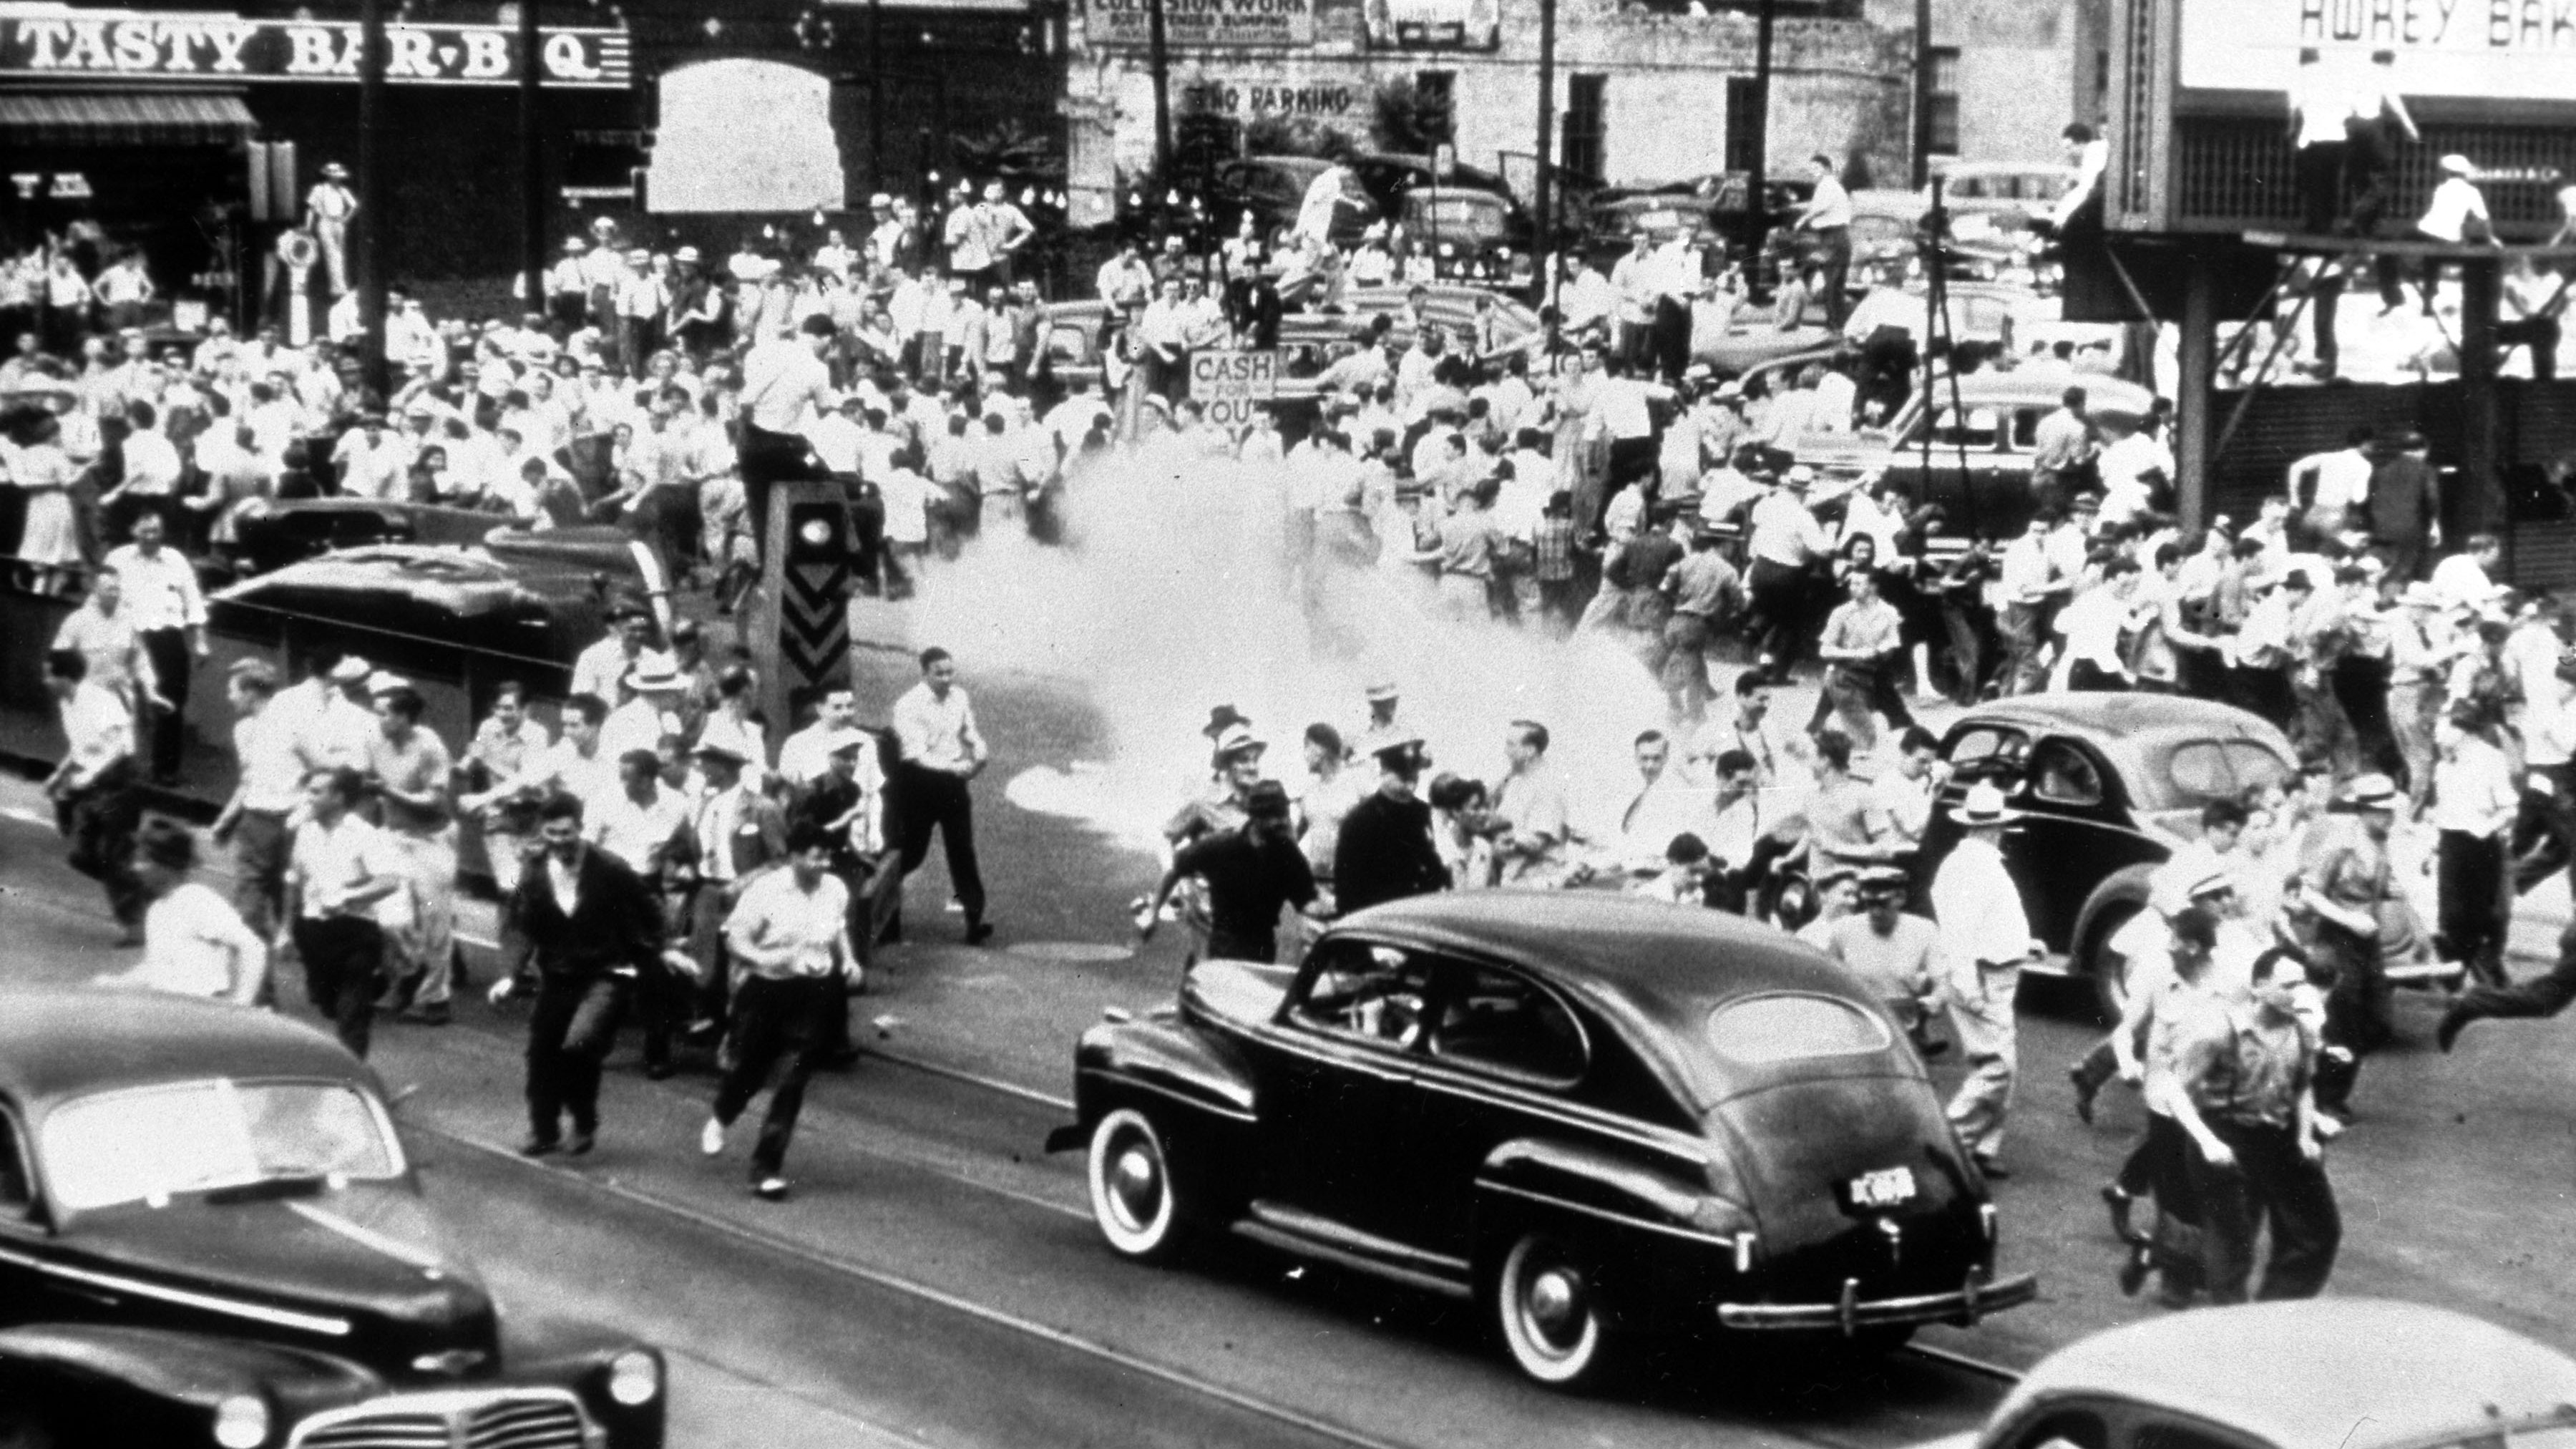 Police use tear gas to disperse a crowd gathered on the main street of Detroit, Michigan, in an effort to halt race rioting, June 21, 1943. Some people were killed and hundreds were injured in the riots. (AP Photo)